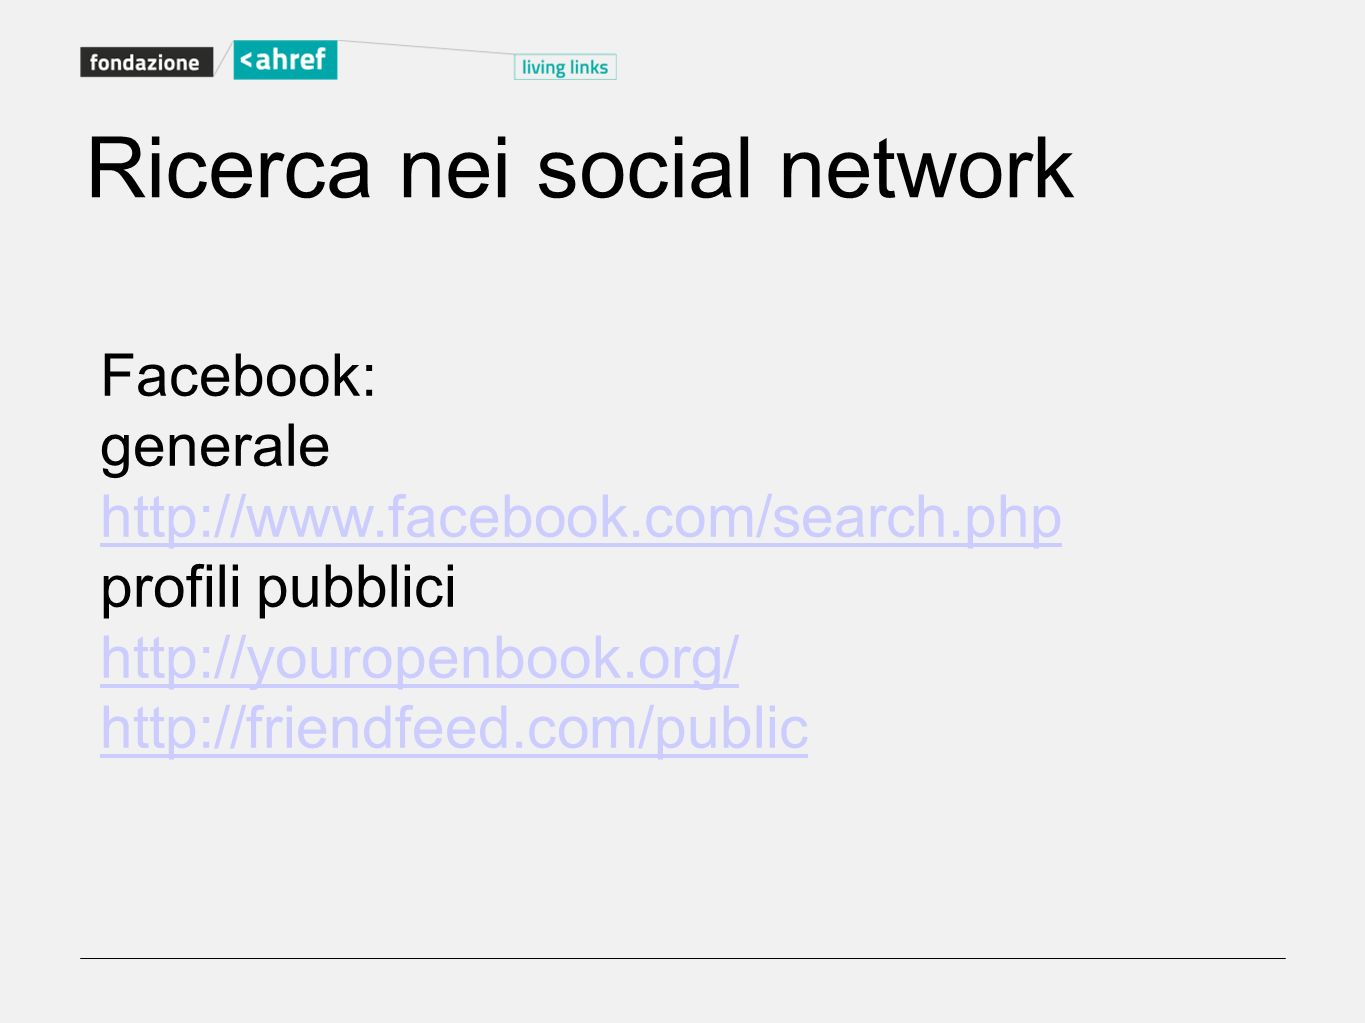 Ricerca nei social network Facebook: generale http://www.facebook.com/search.php profili pubblici http://youropenbook.org/ http://friendfeed.com/publi